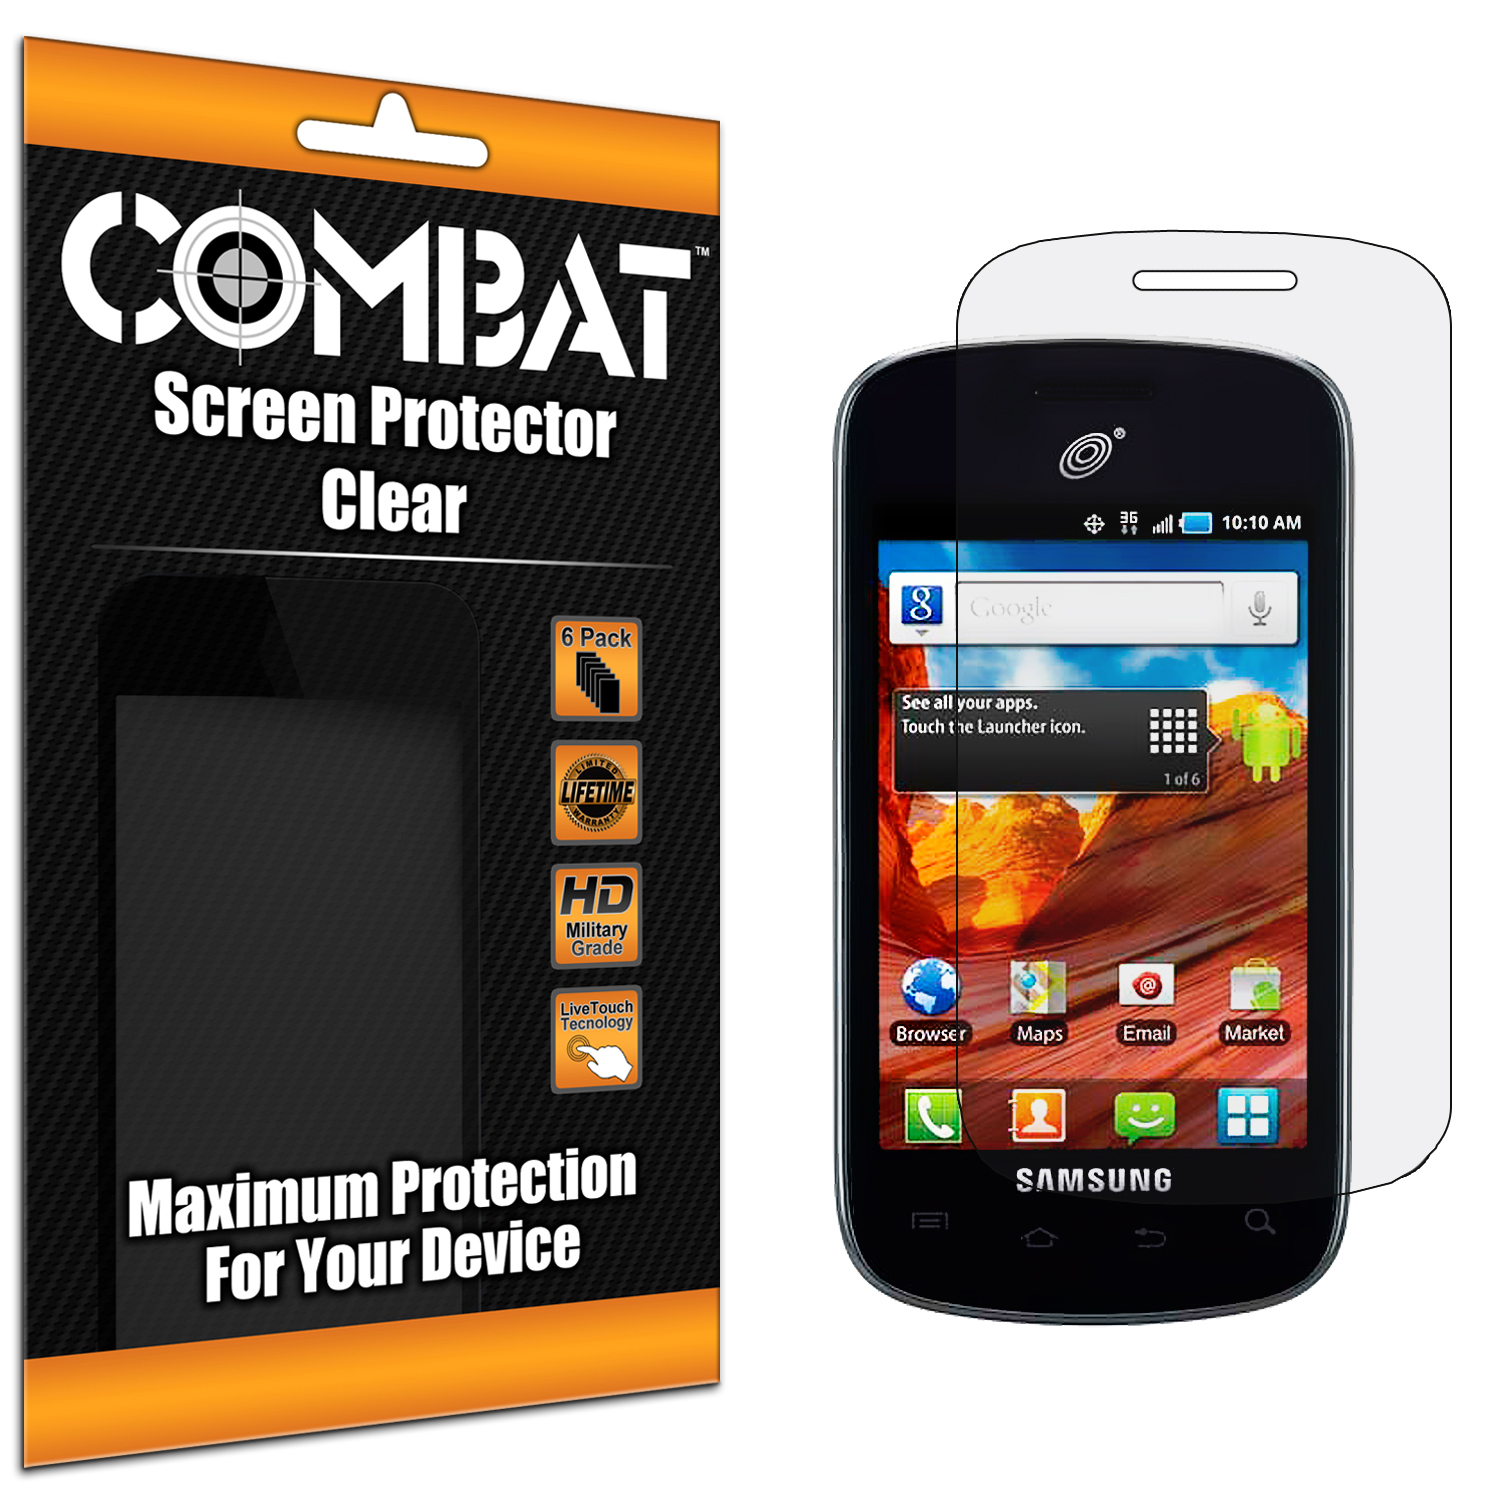 Samsung Proclaim S720C Combat 6 Pack HD Clear Screen Protector